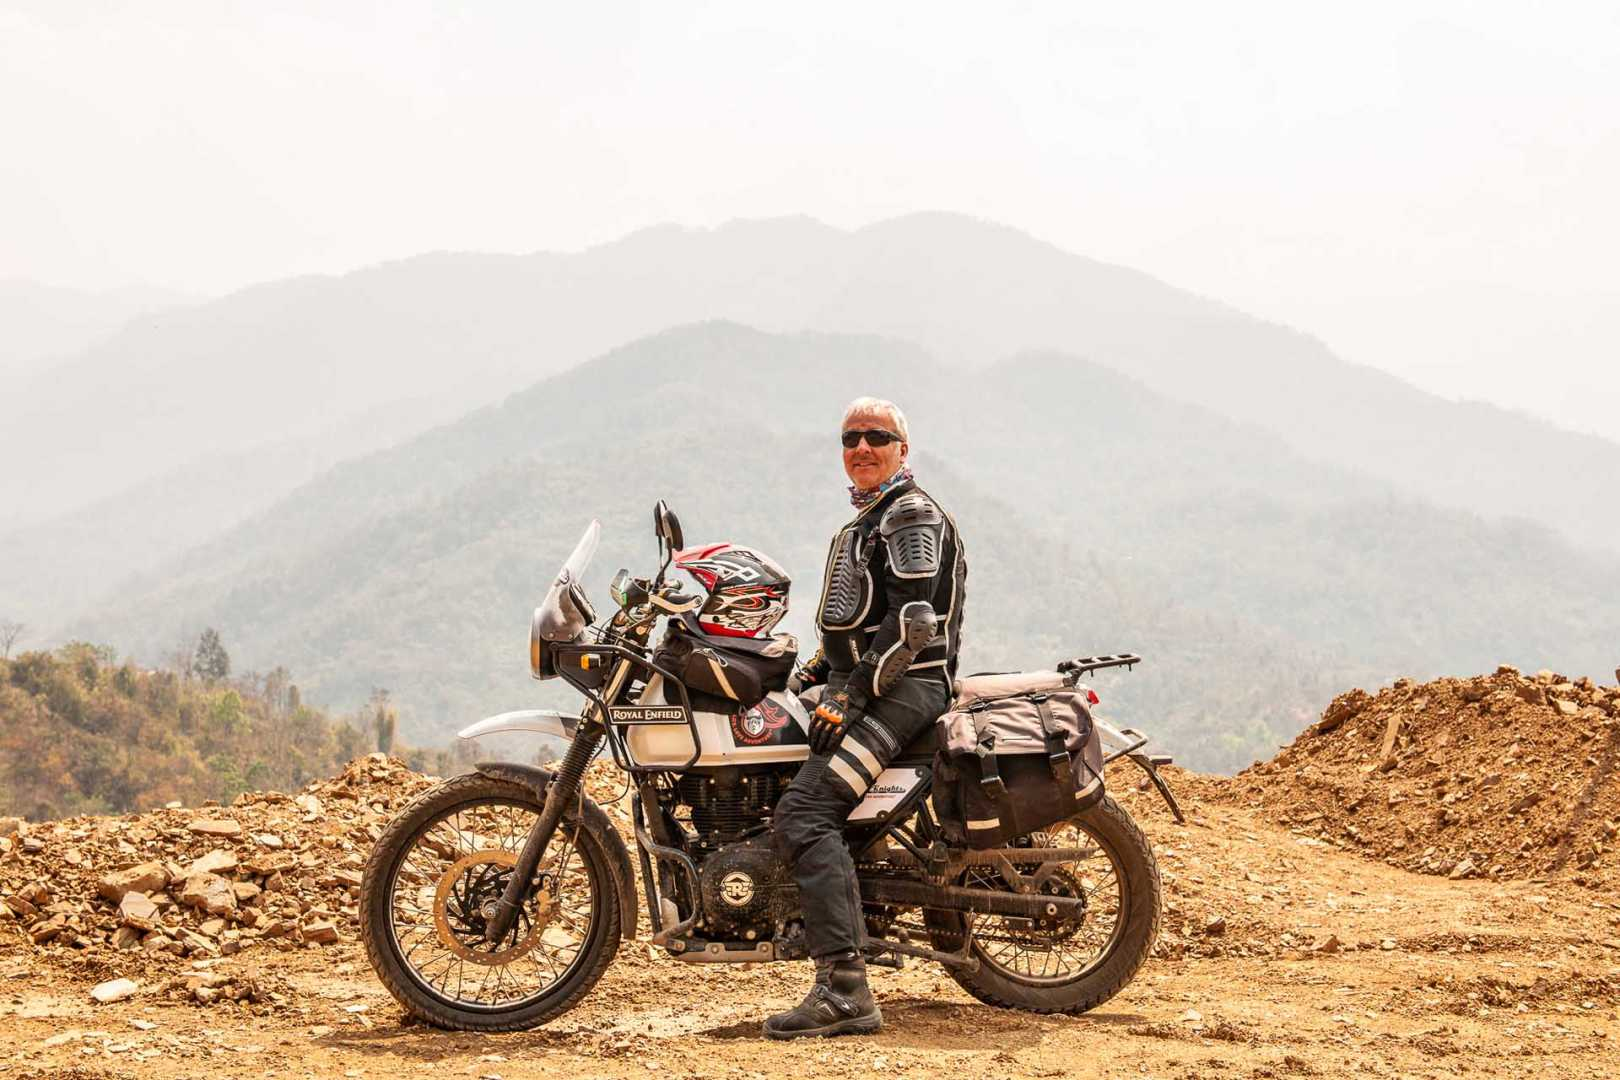 Nomadic Knights motorcyclist riding up rocky mountain